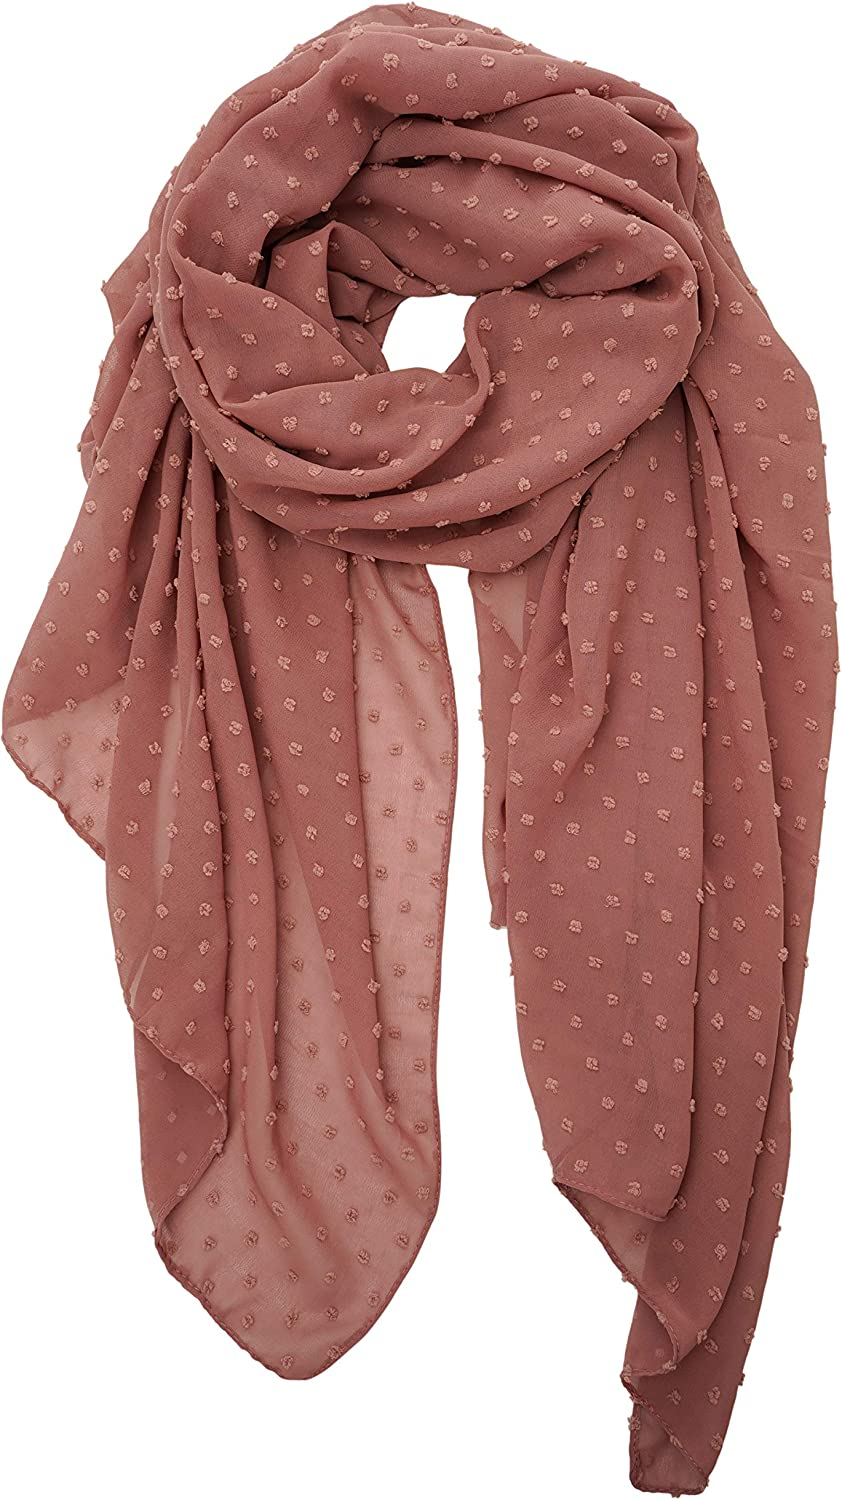 YOUR SMILE Ladies/Women's Lightweight Solid Color Pearl Chiffon Long Shawl Scarf For Spring Summer Fall